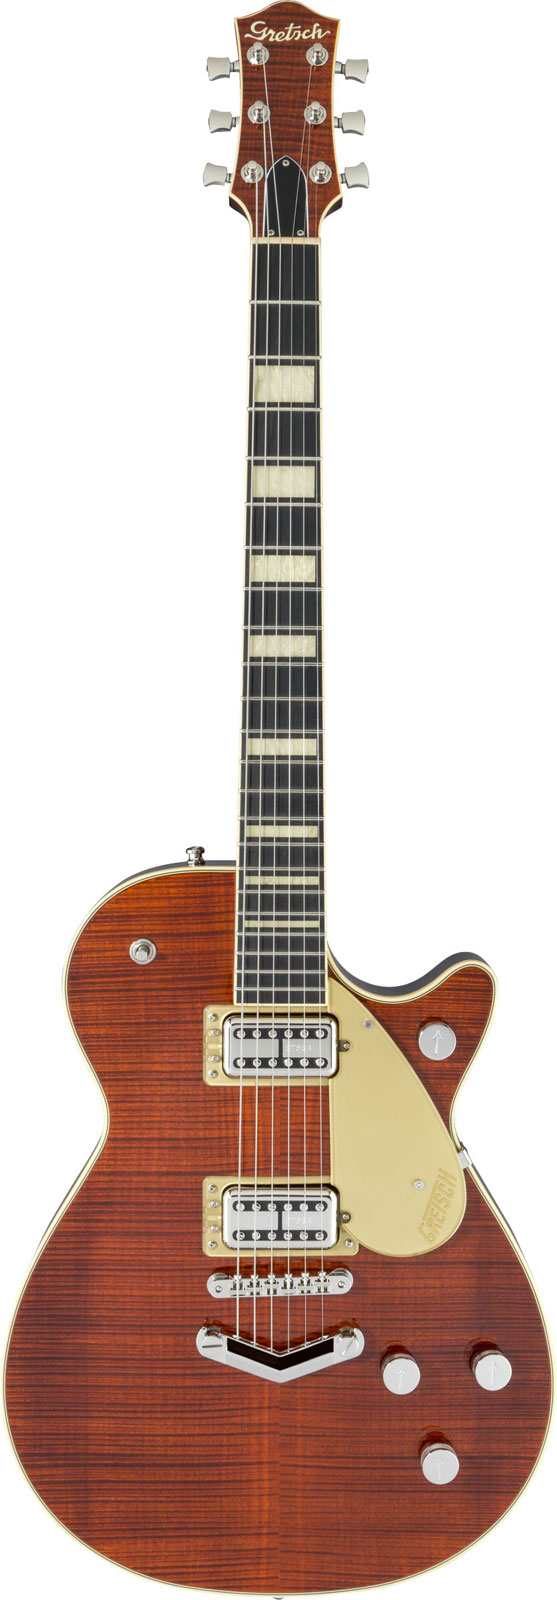 Gretsch Guitars G6228fm Players Edition Jet Bt With V-stoptail Flame Maple Ebony Fingerboard Bourbon Stain